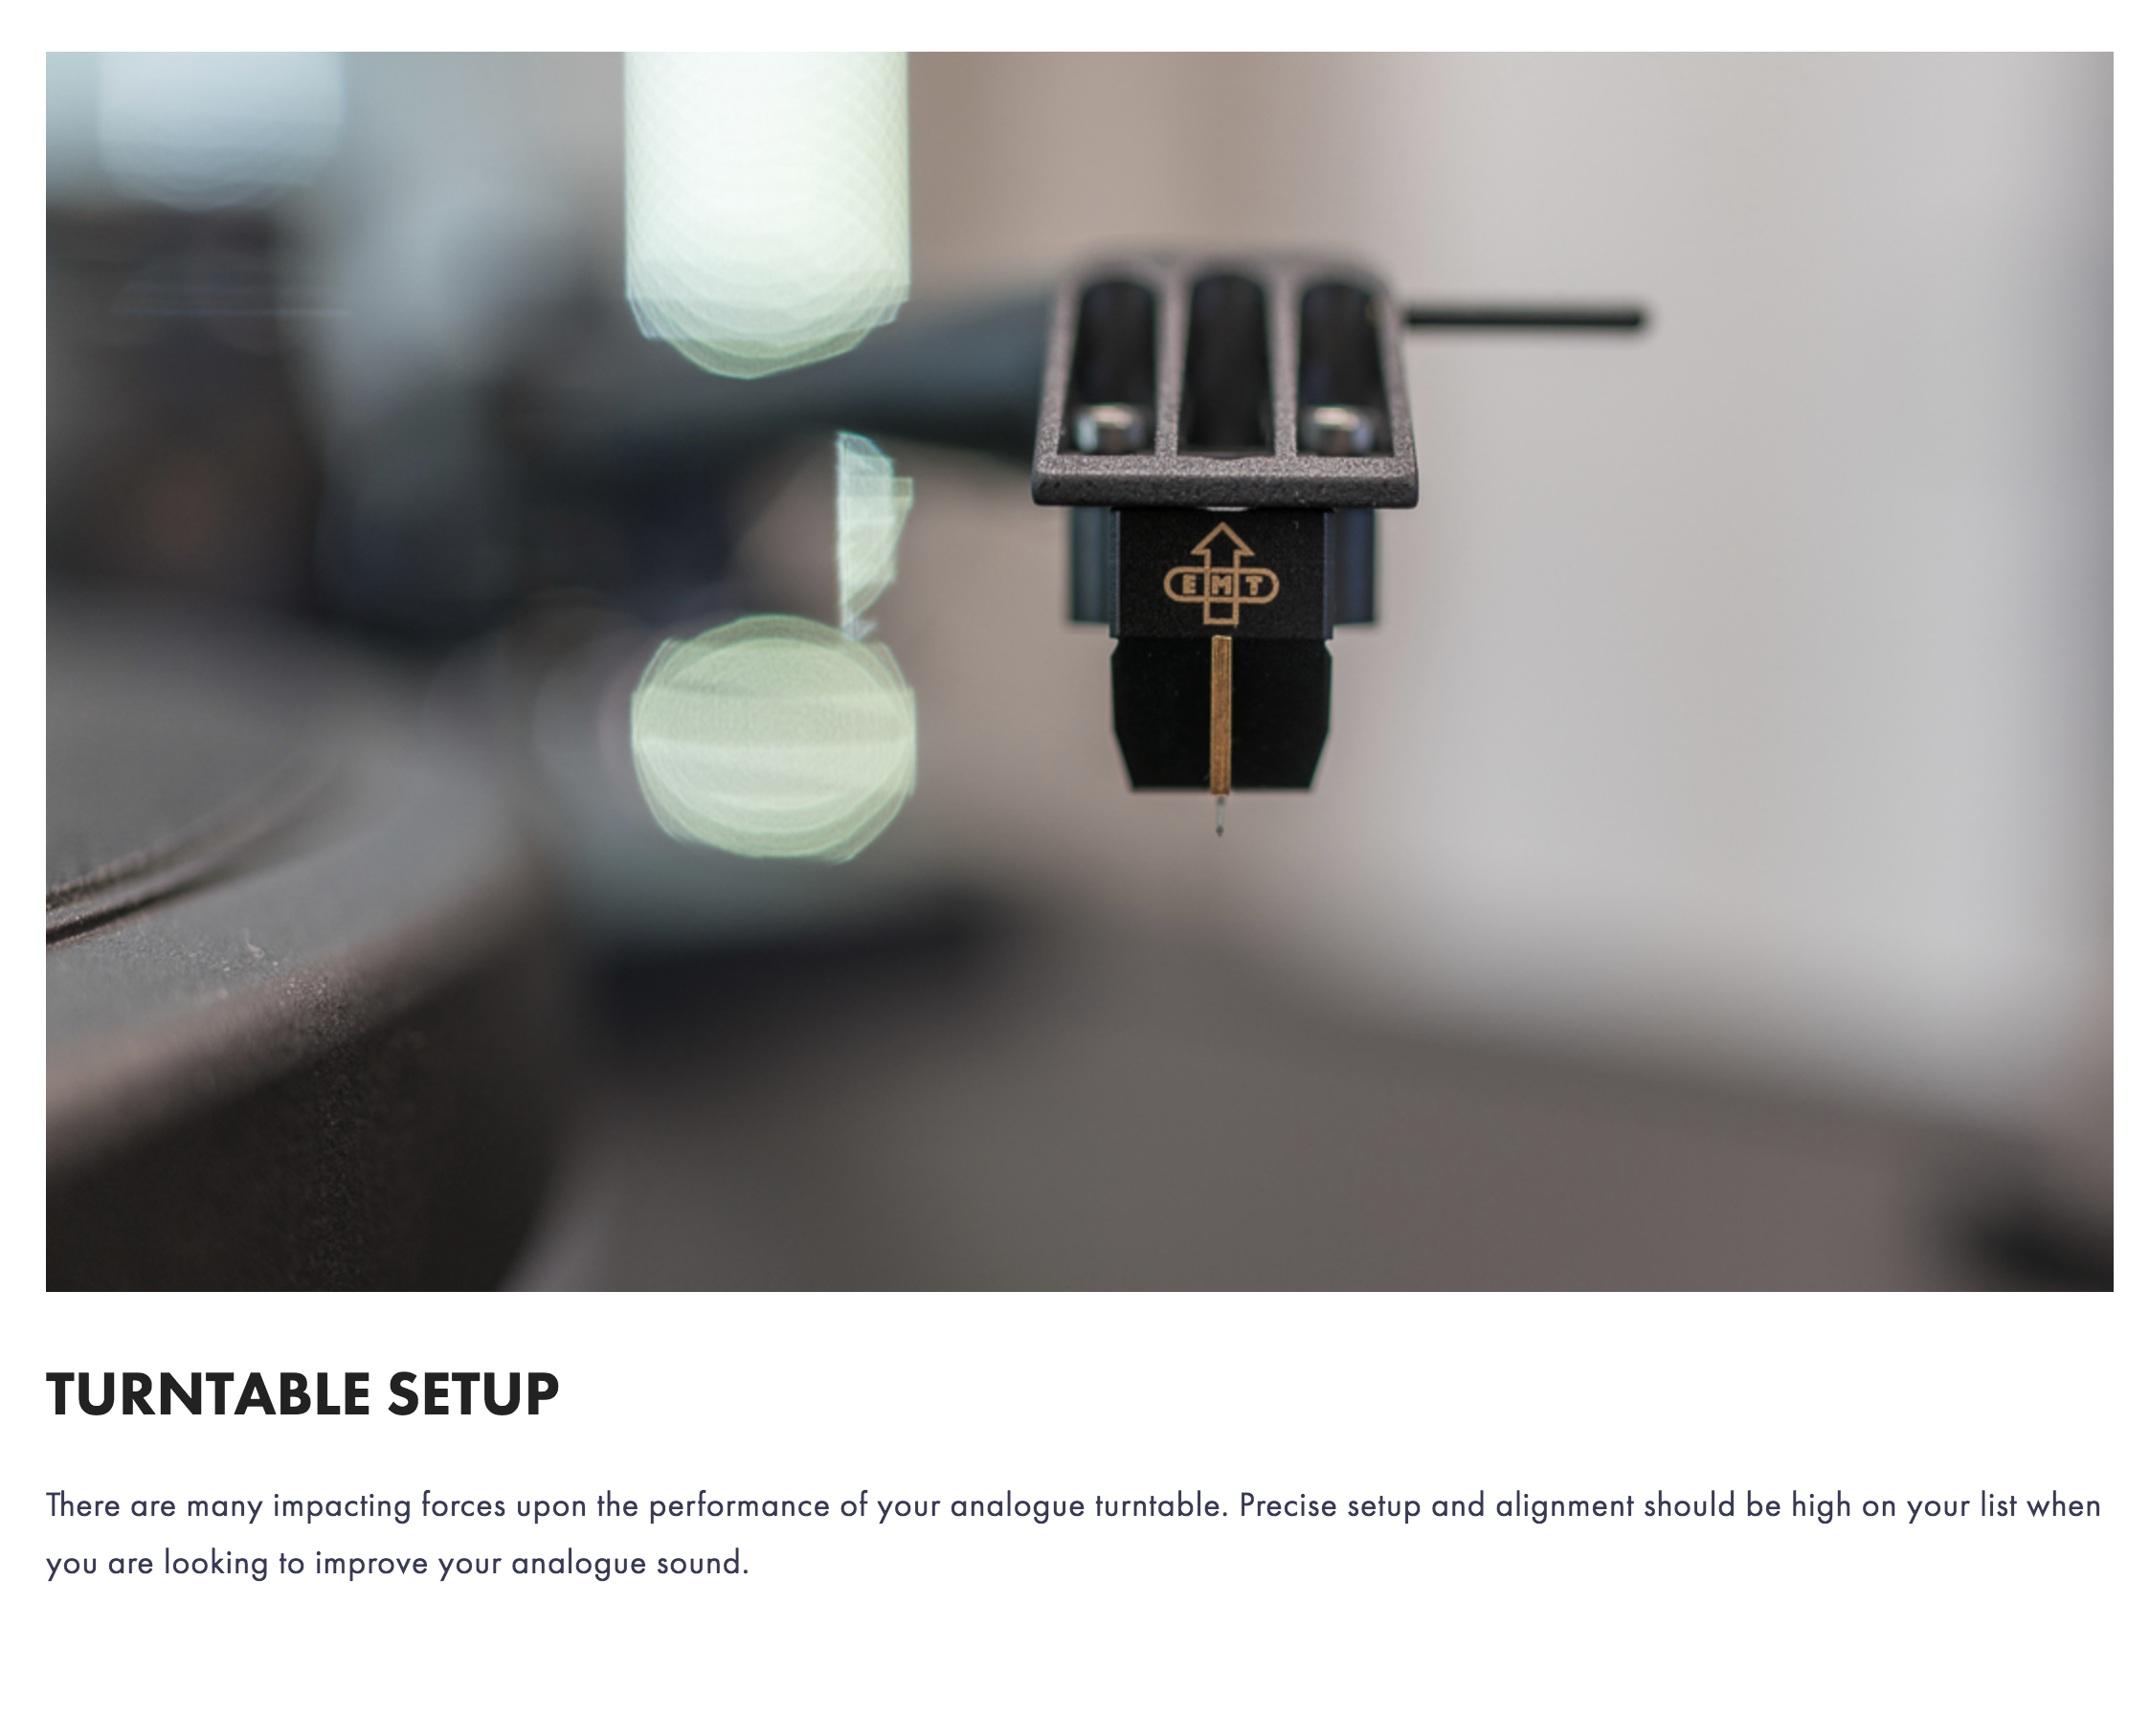 Visit our guide for all things Turntable Setup